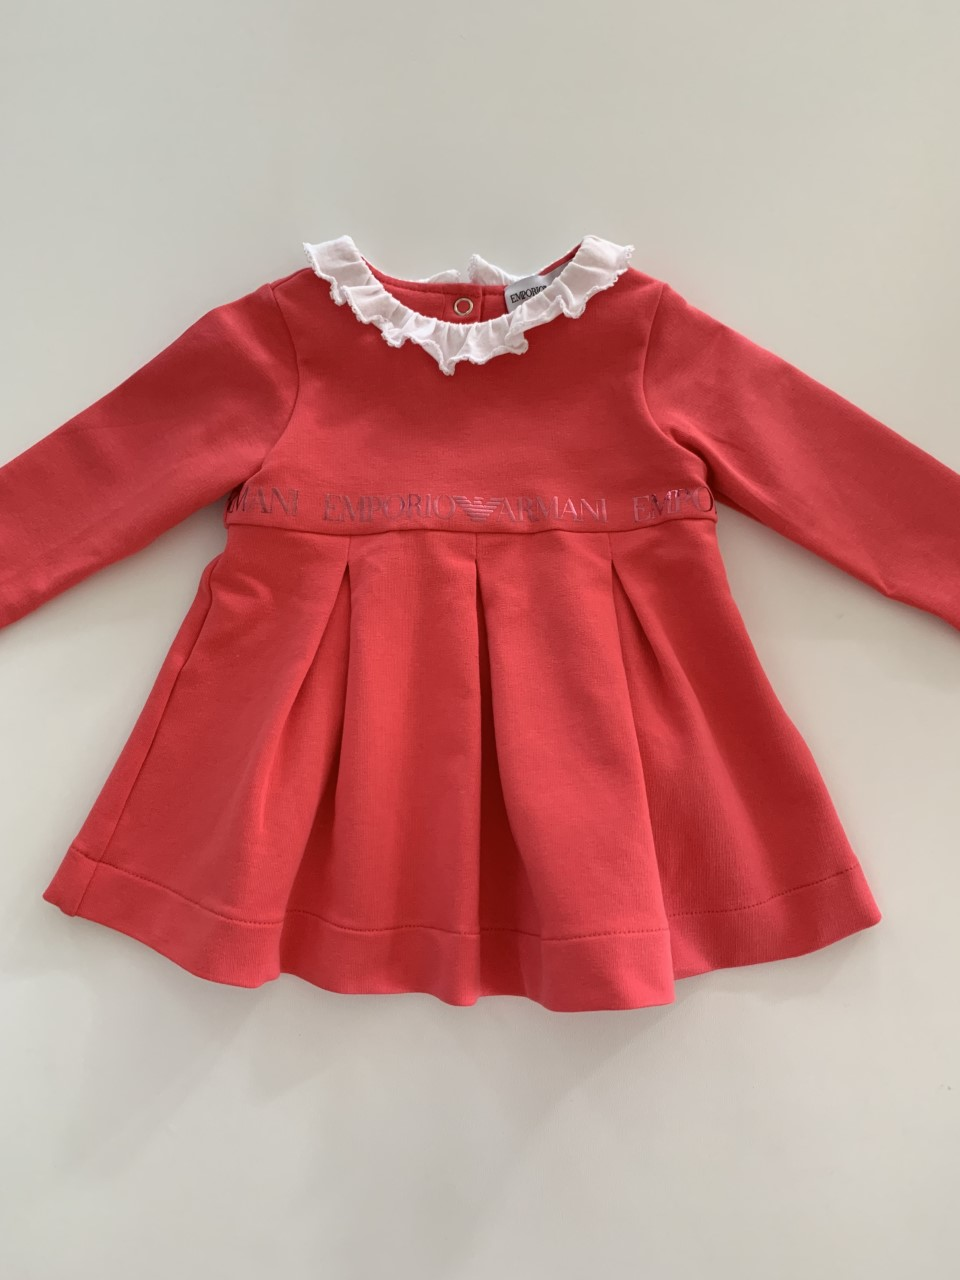 DRESS/Girls   3 months up to 3 years